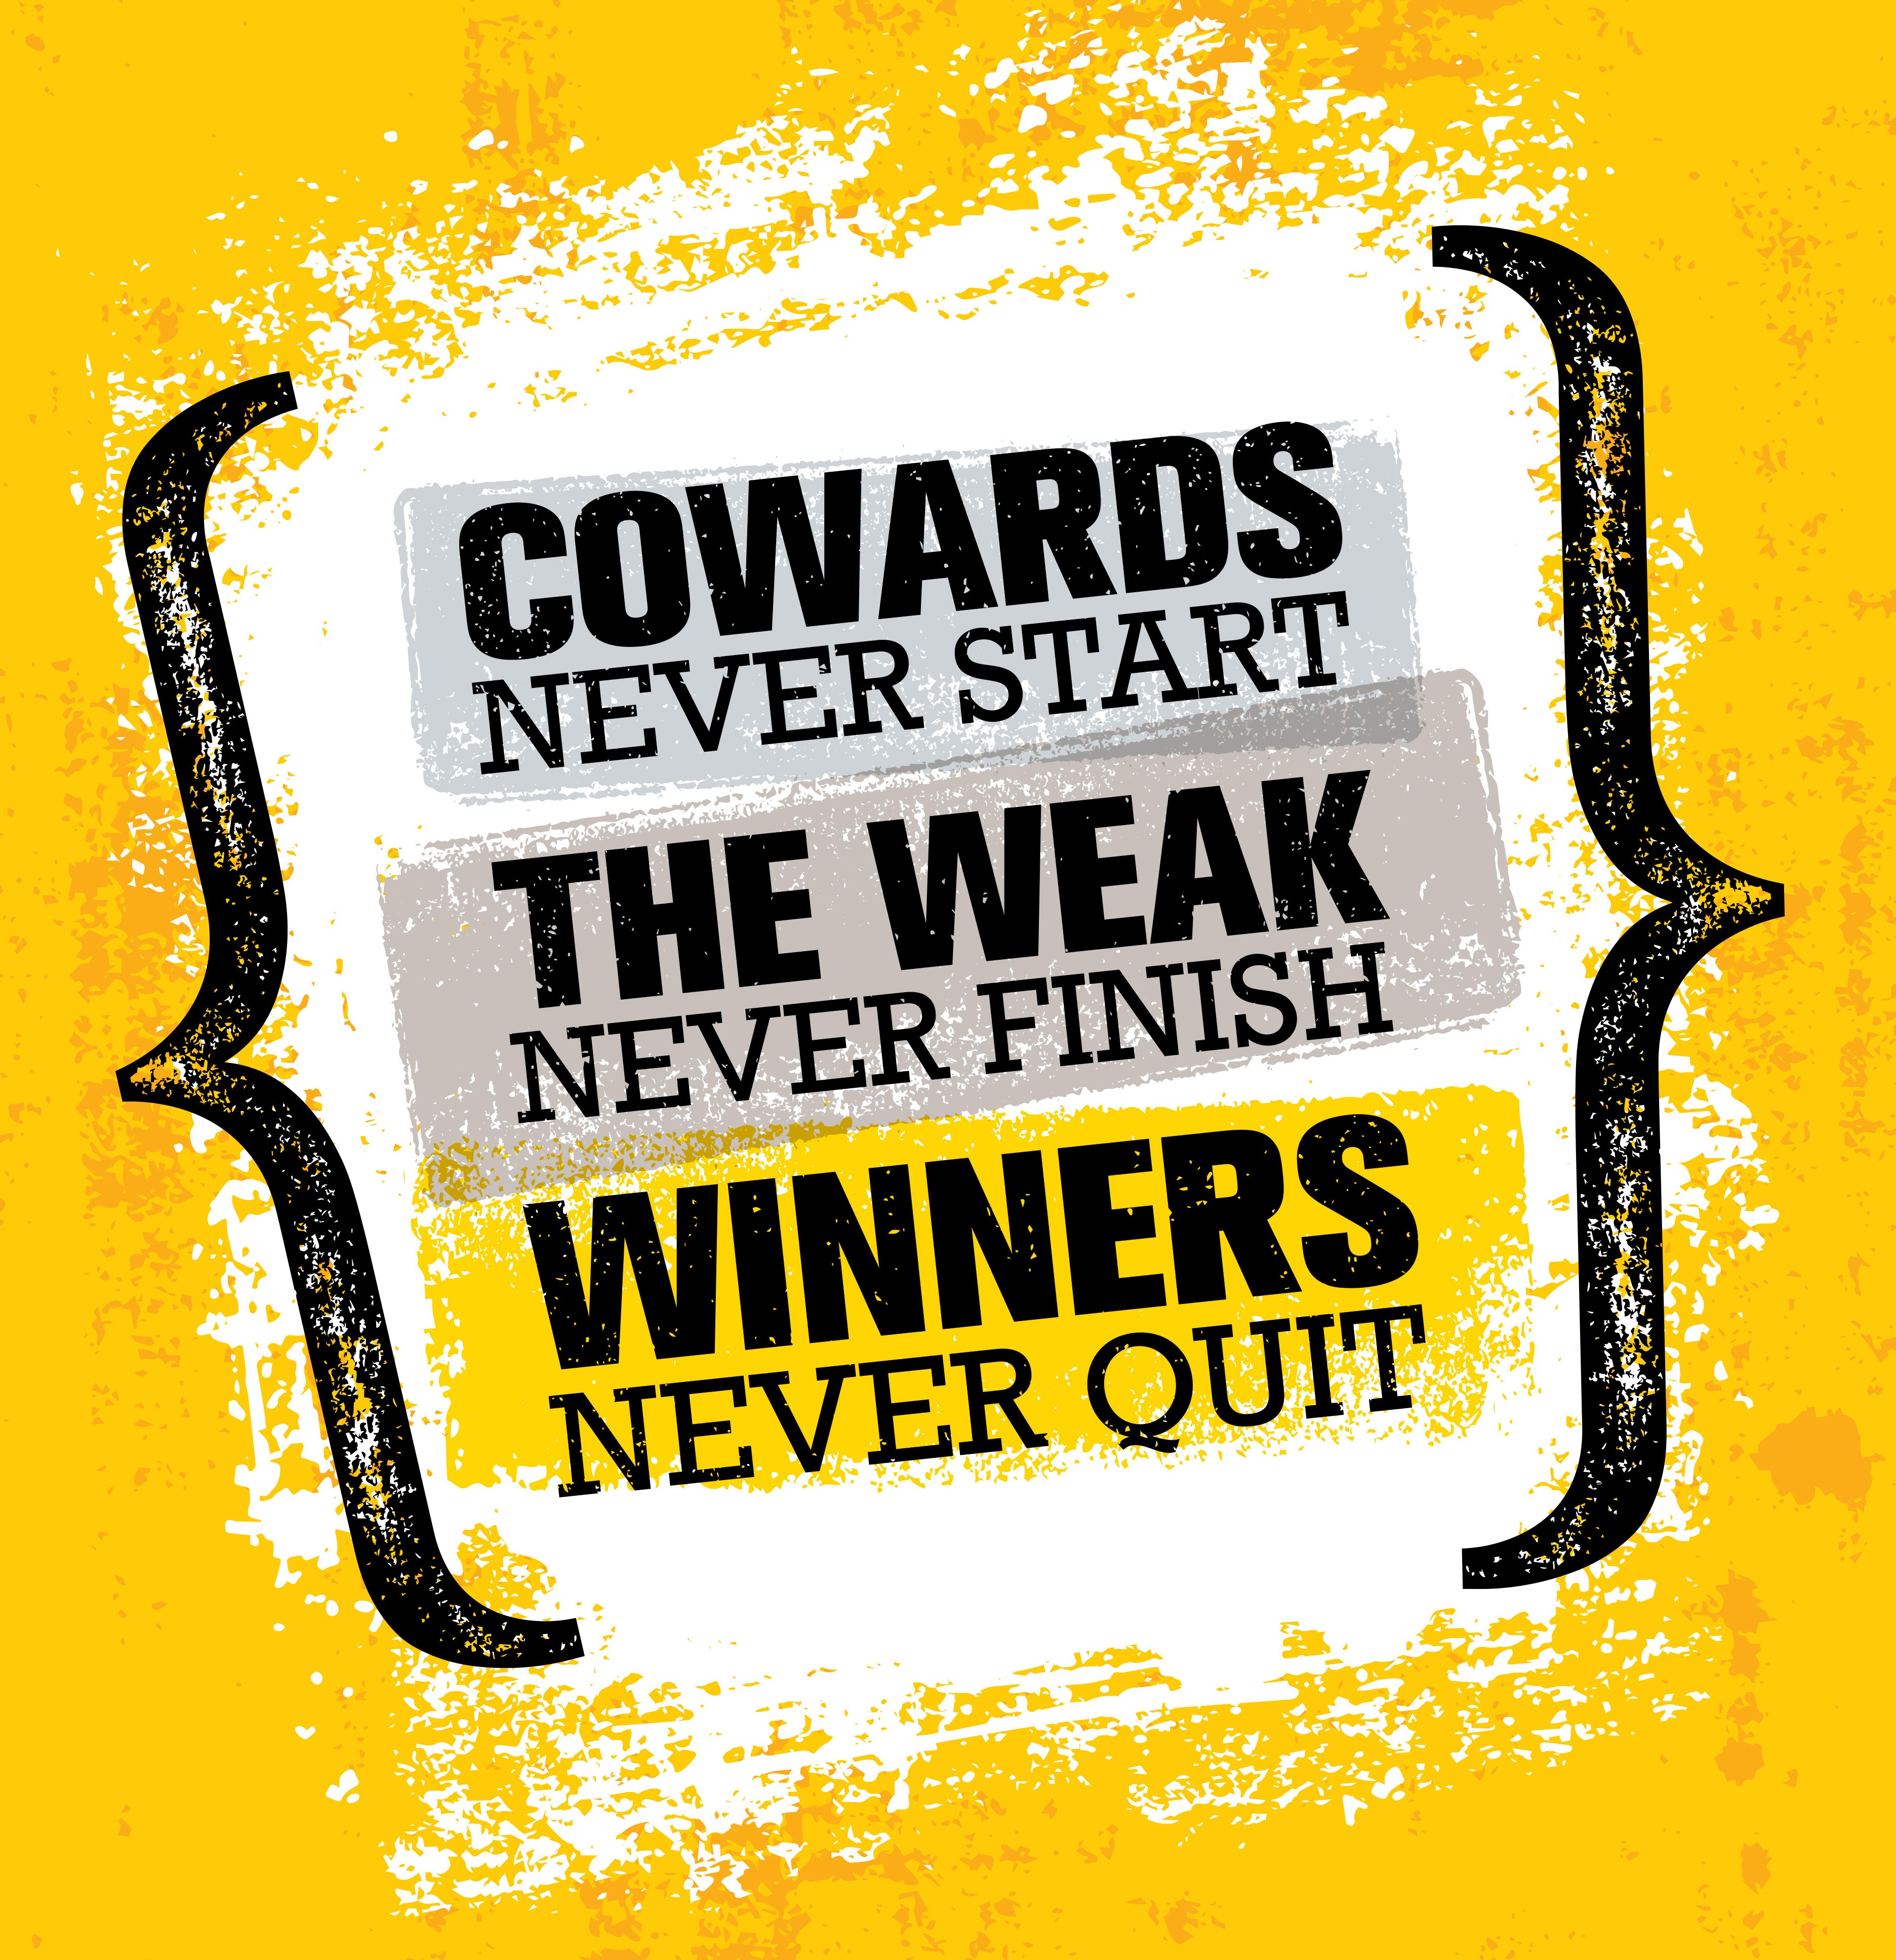 Cowards Never Start The Weak Never Finish Winners Never Quit